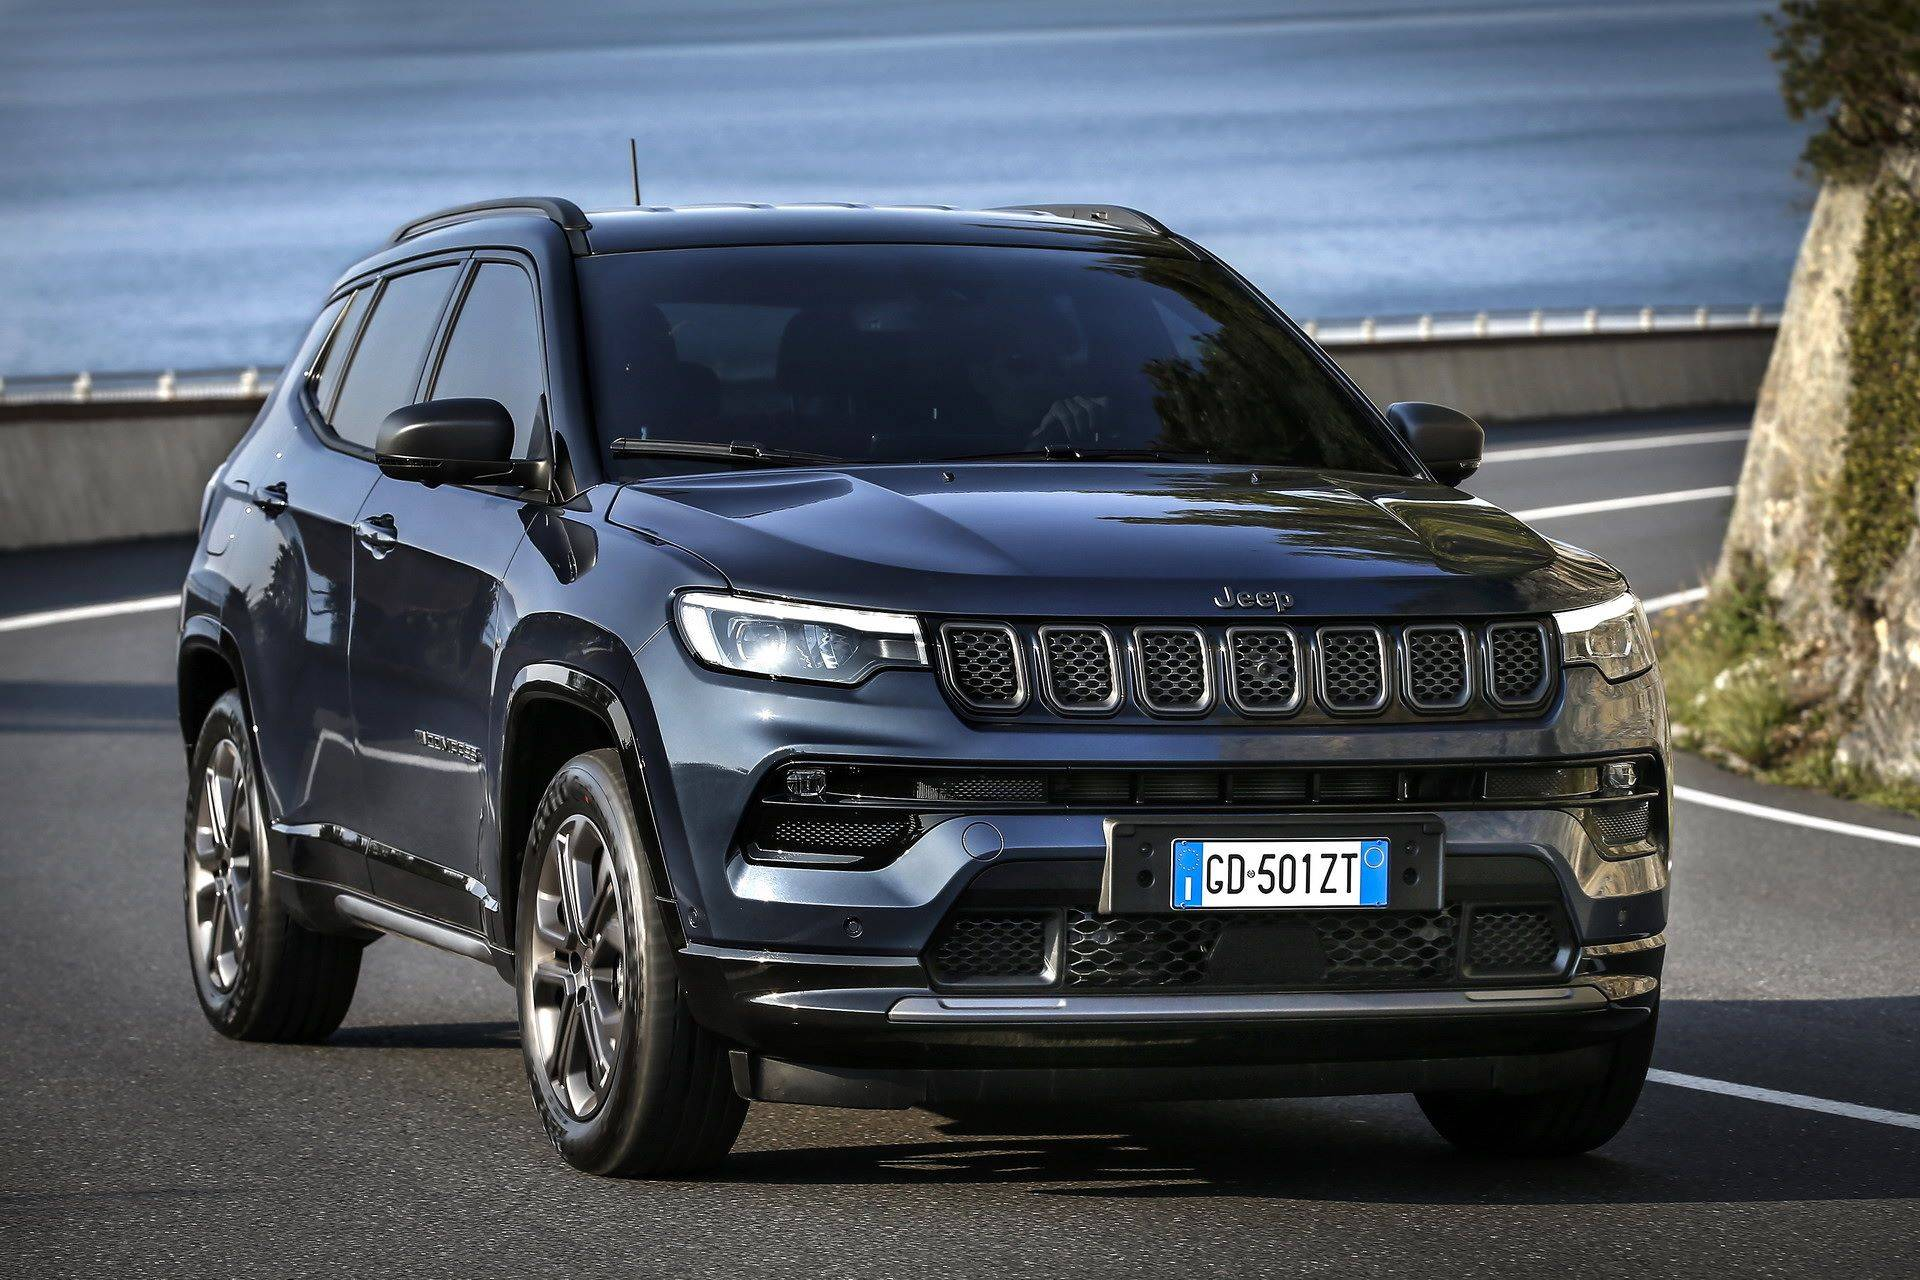 Jeep-Compass-facelift-2021-30